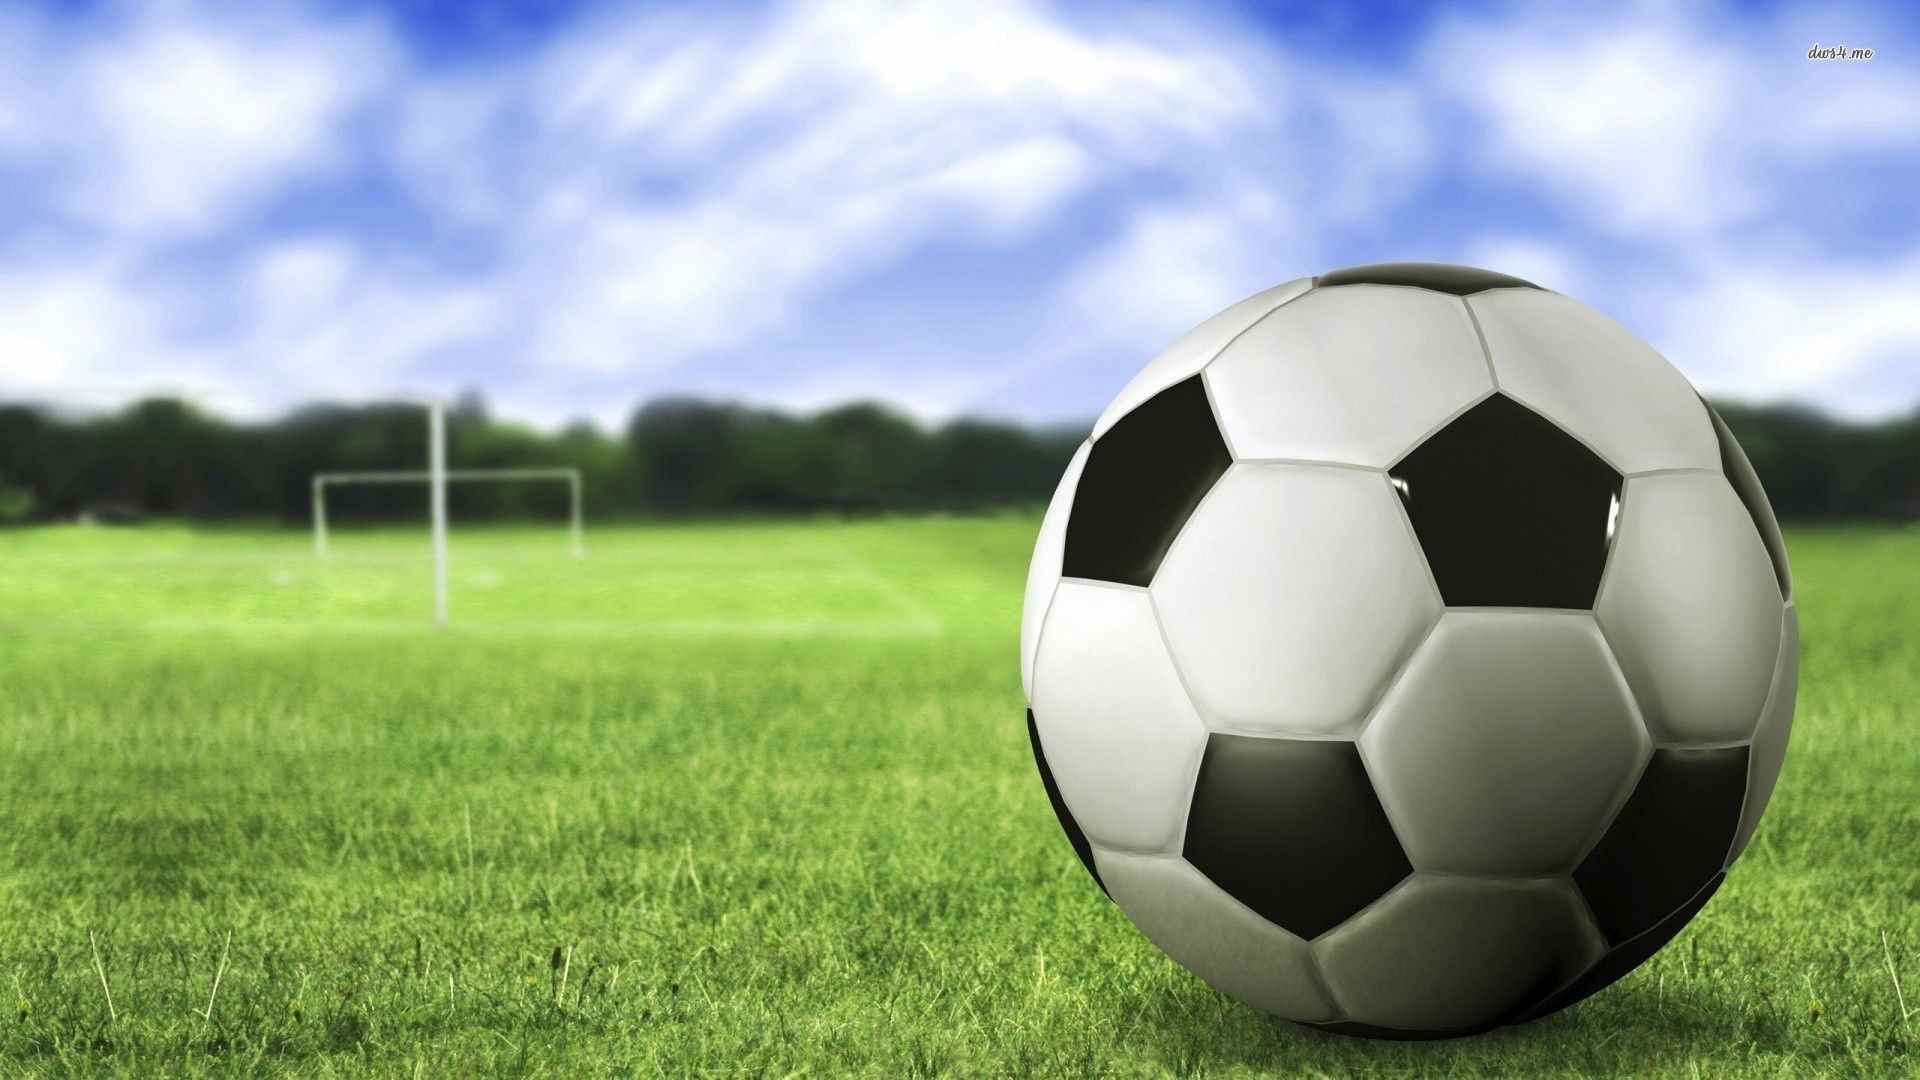 Soccer background ·① Download free cool wallpapers for desktop computers and smartphones in any ...